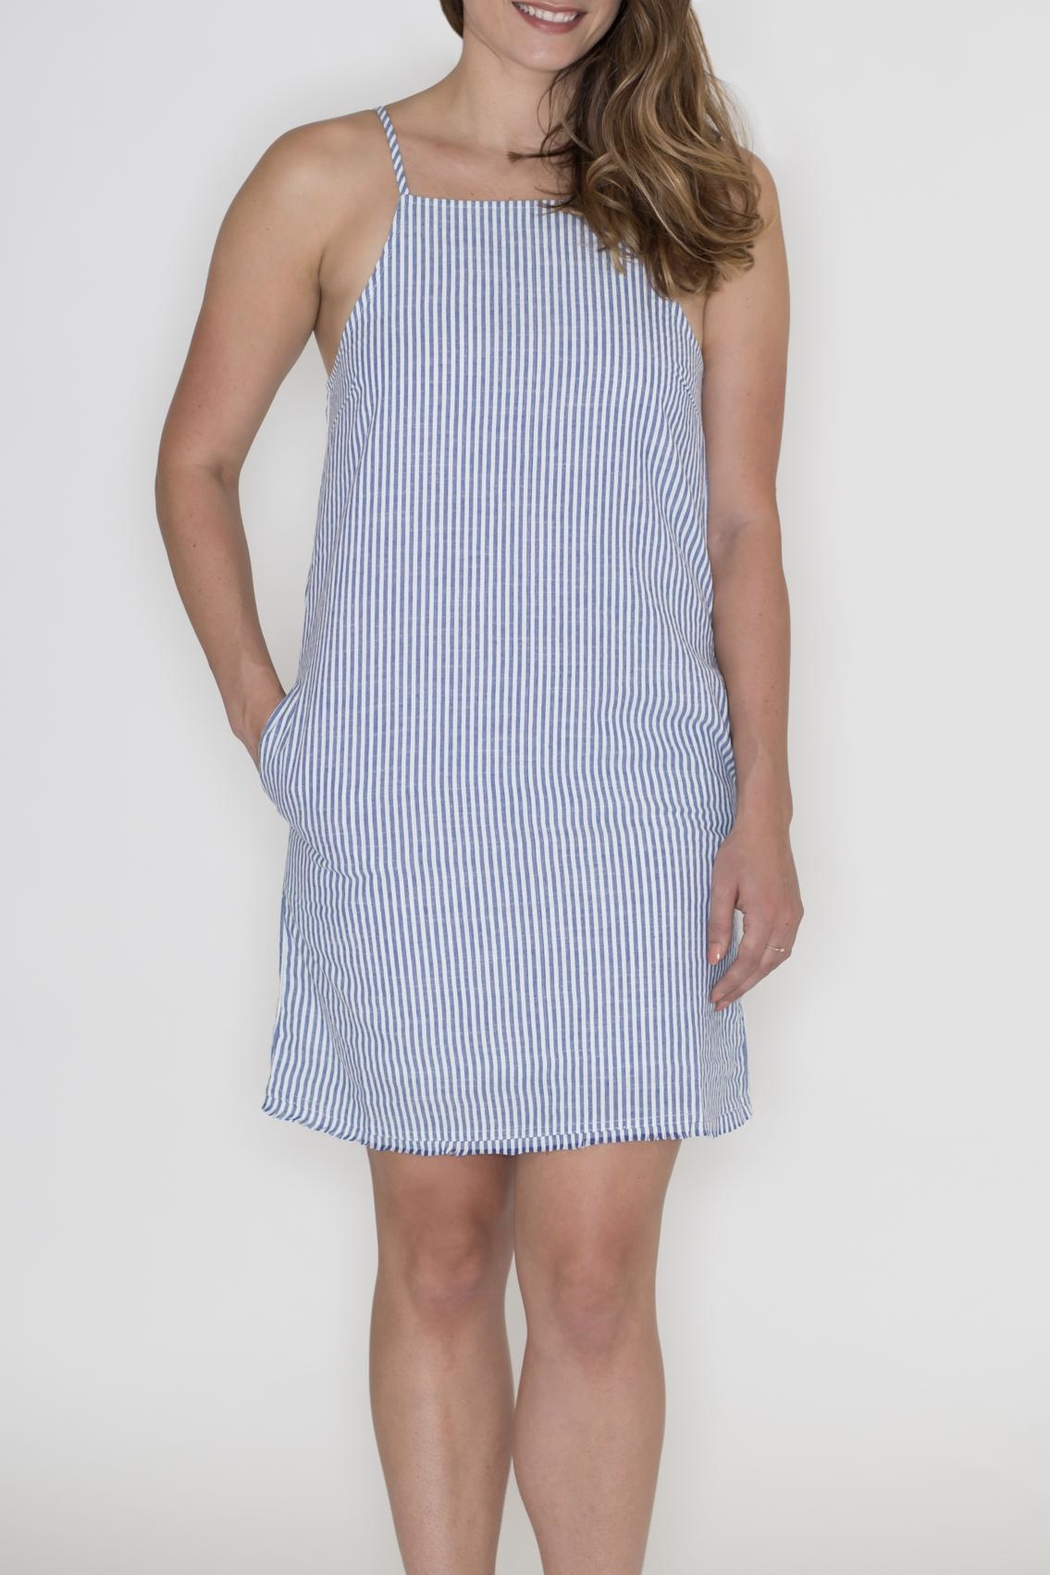 Very J Striped Denim Dress - Main Image